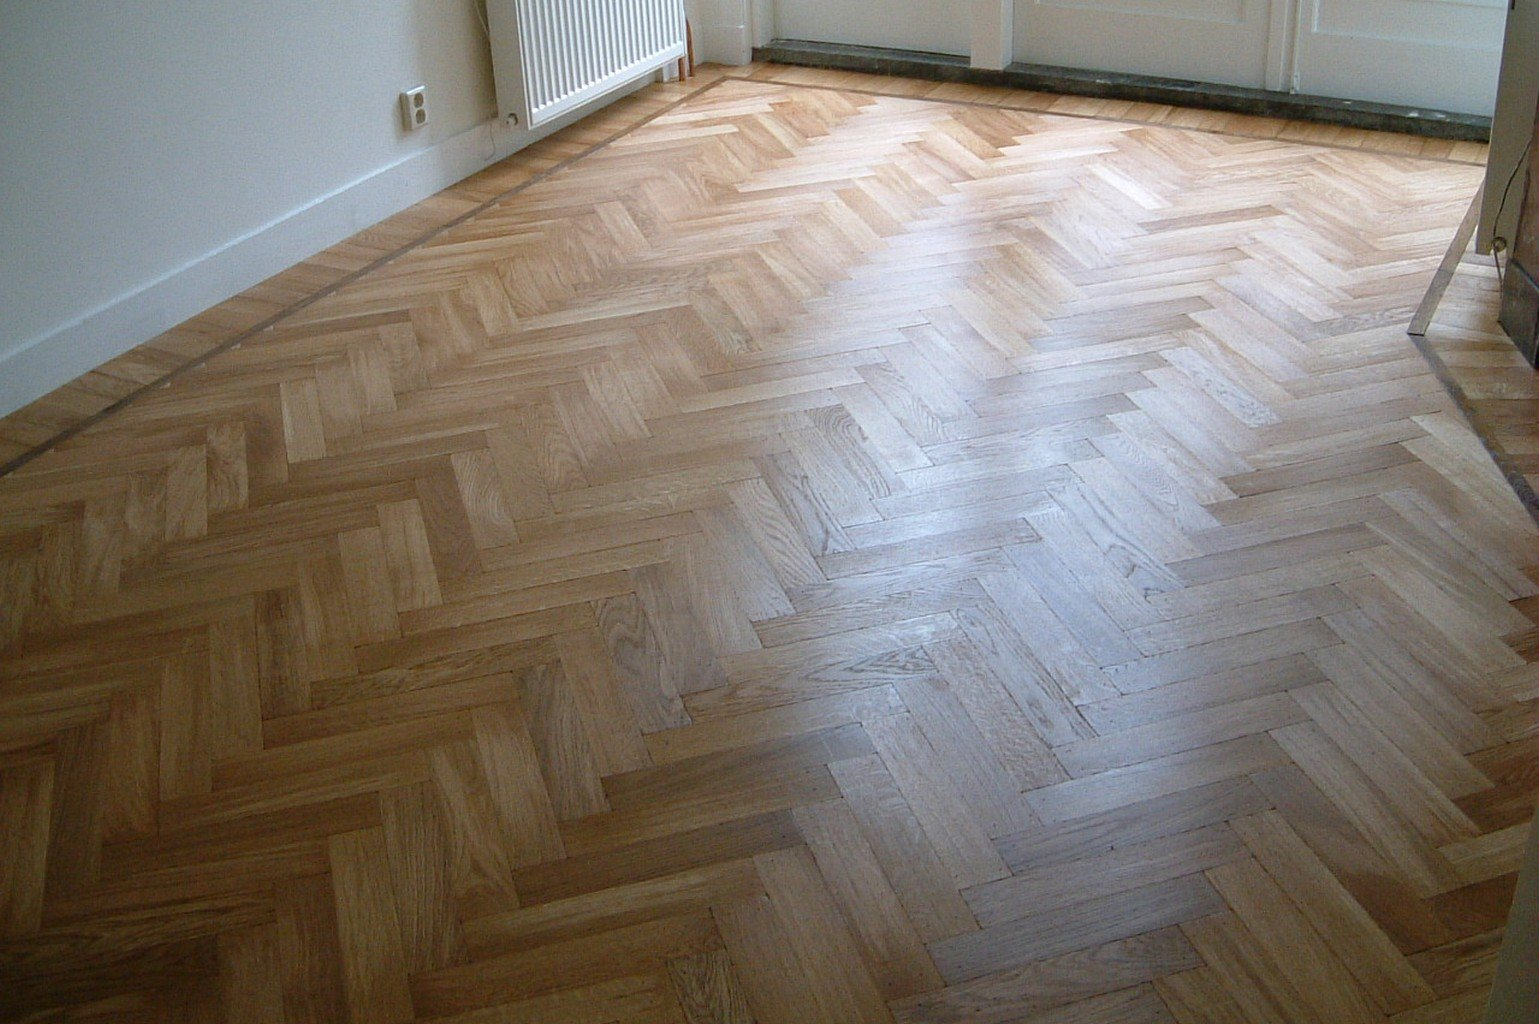 herringbone luxury wood flooring in cream room